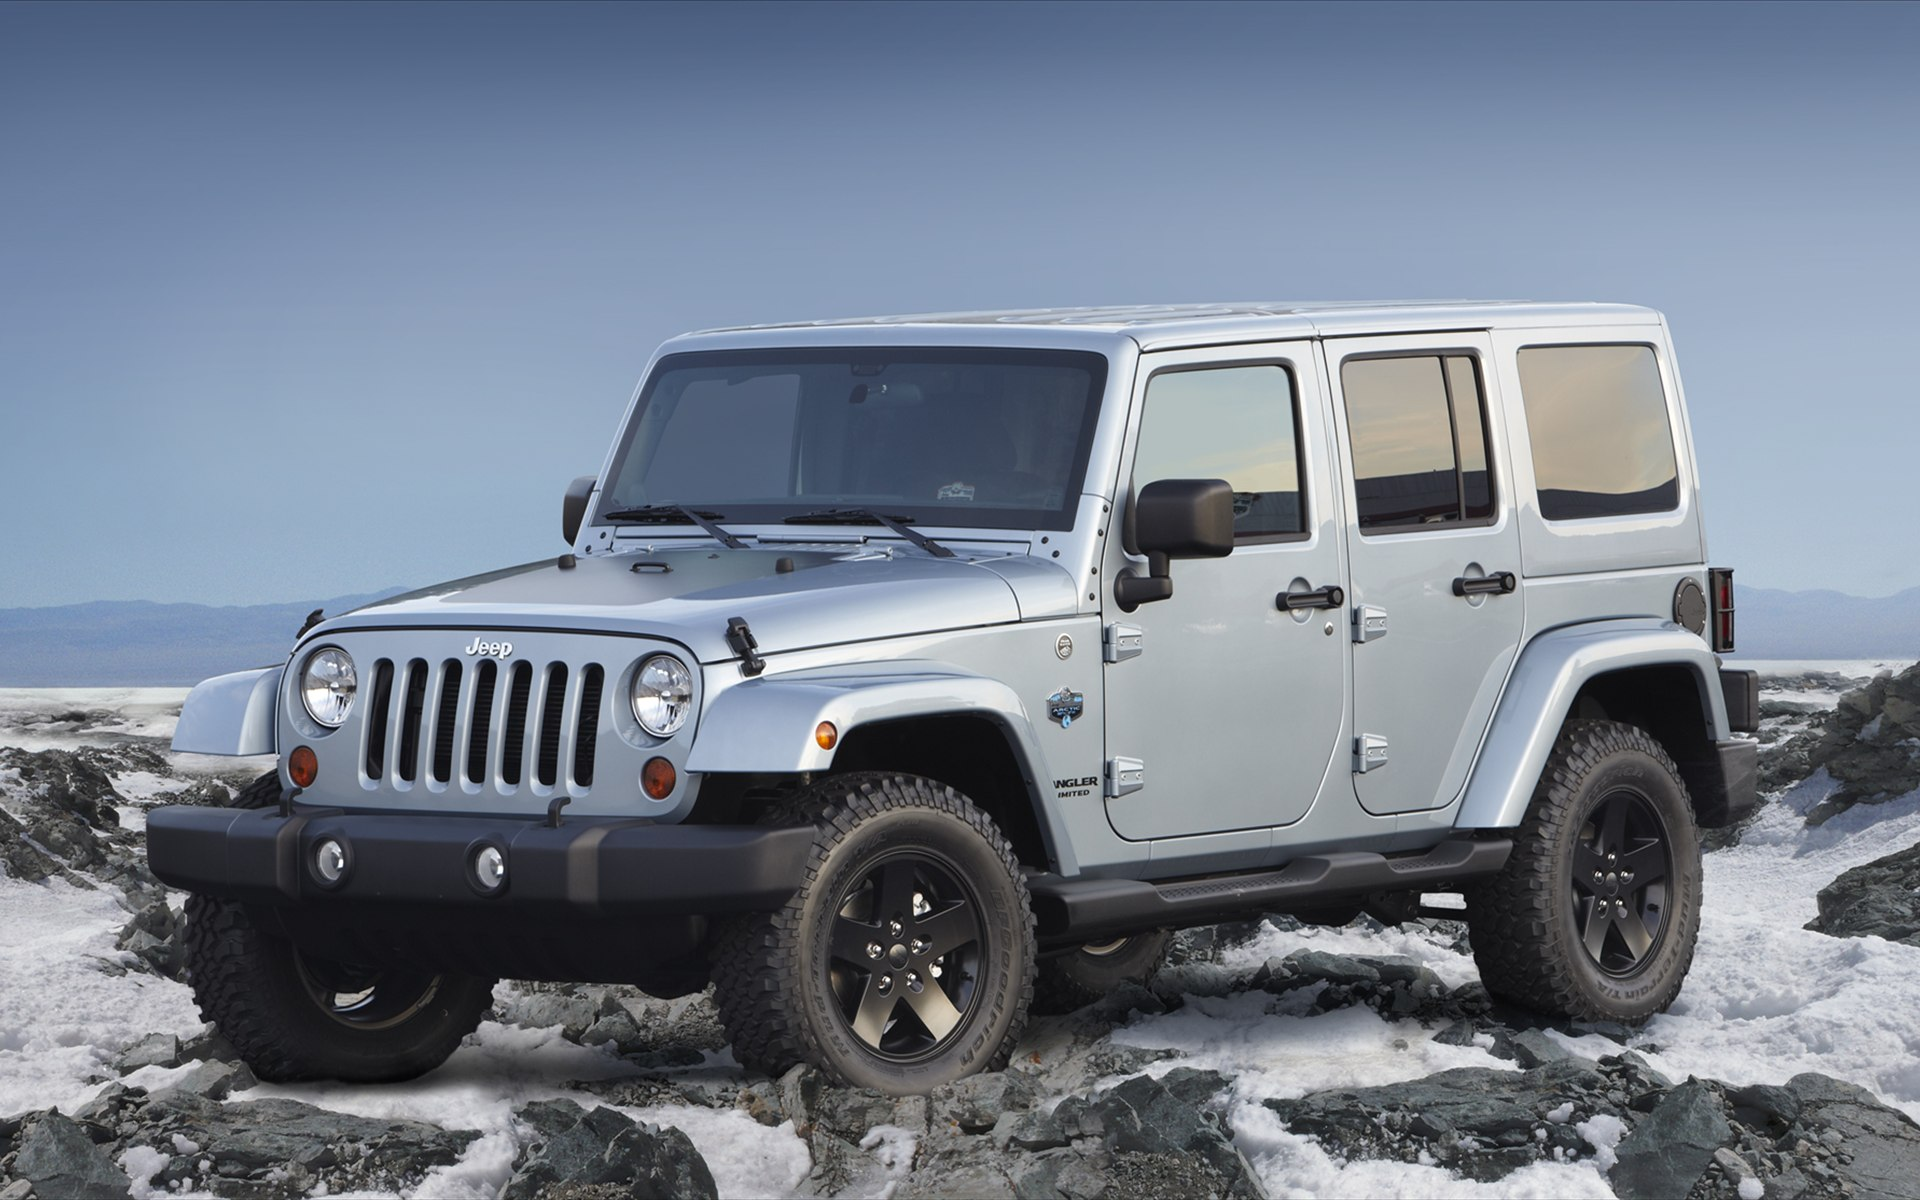 2012 jeep wrangler unlimited arctic wallpaper hd car wallpapers id 2306. Black Bedroom Furniture Sets. Home Design Ideas